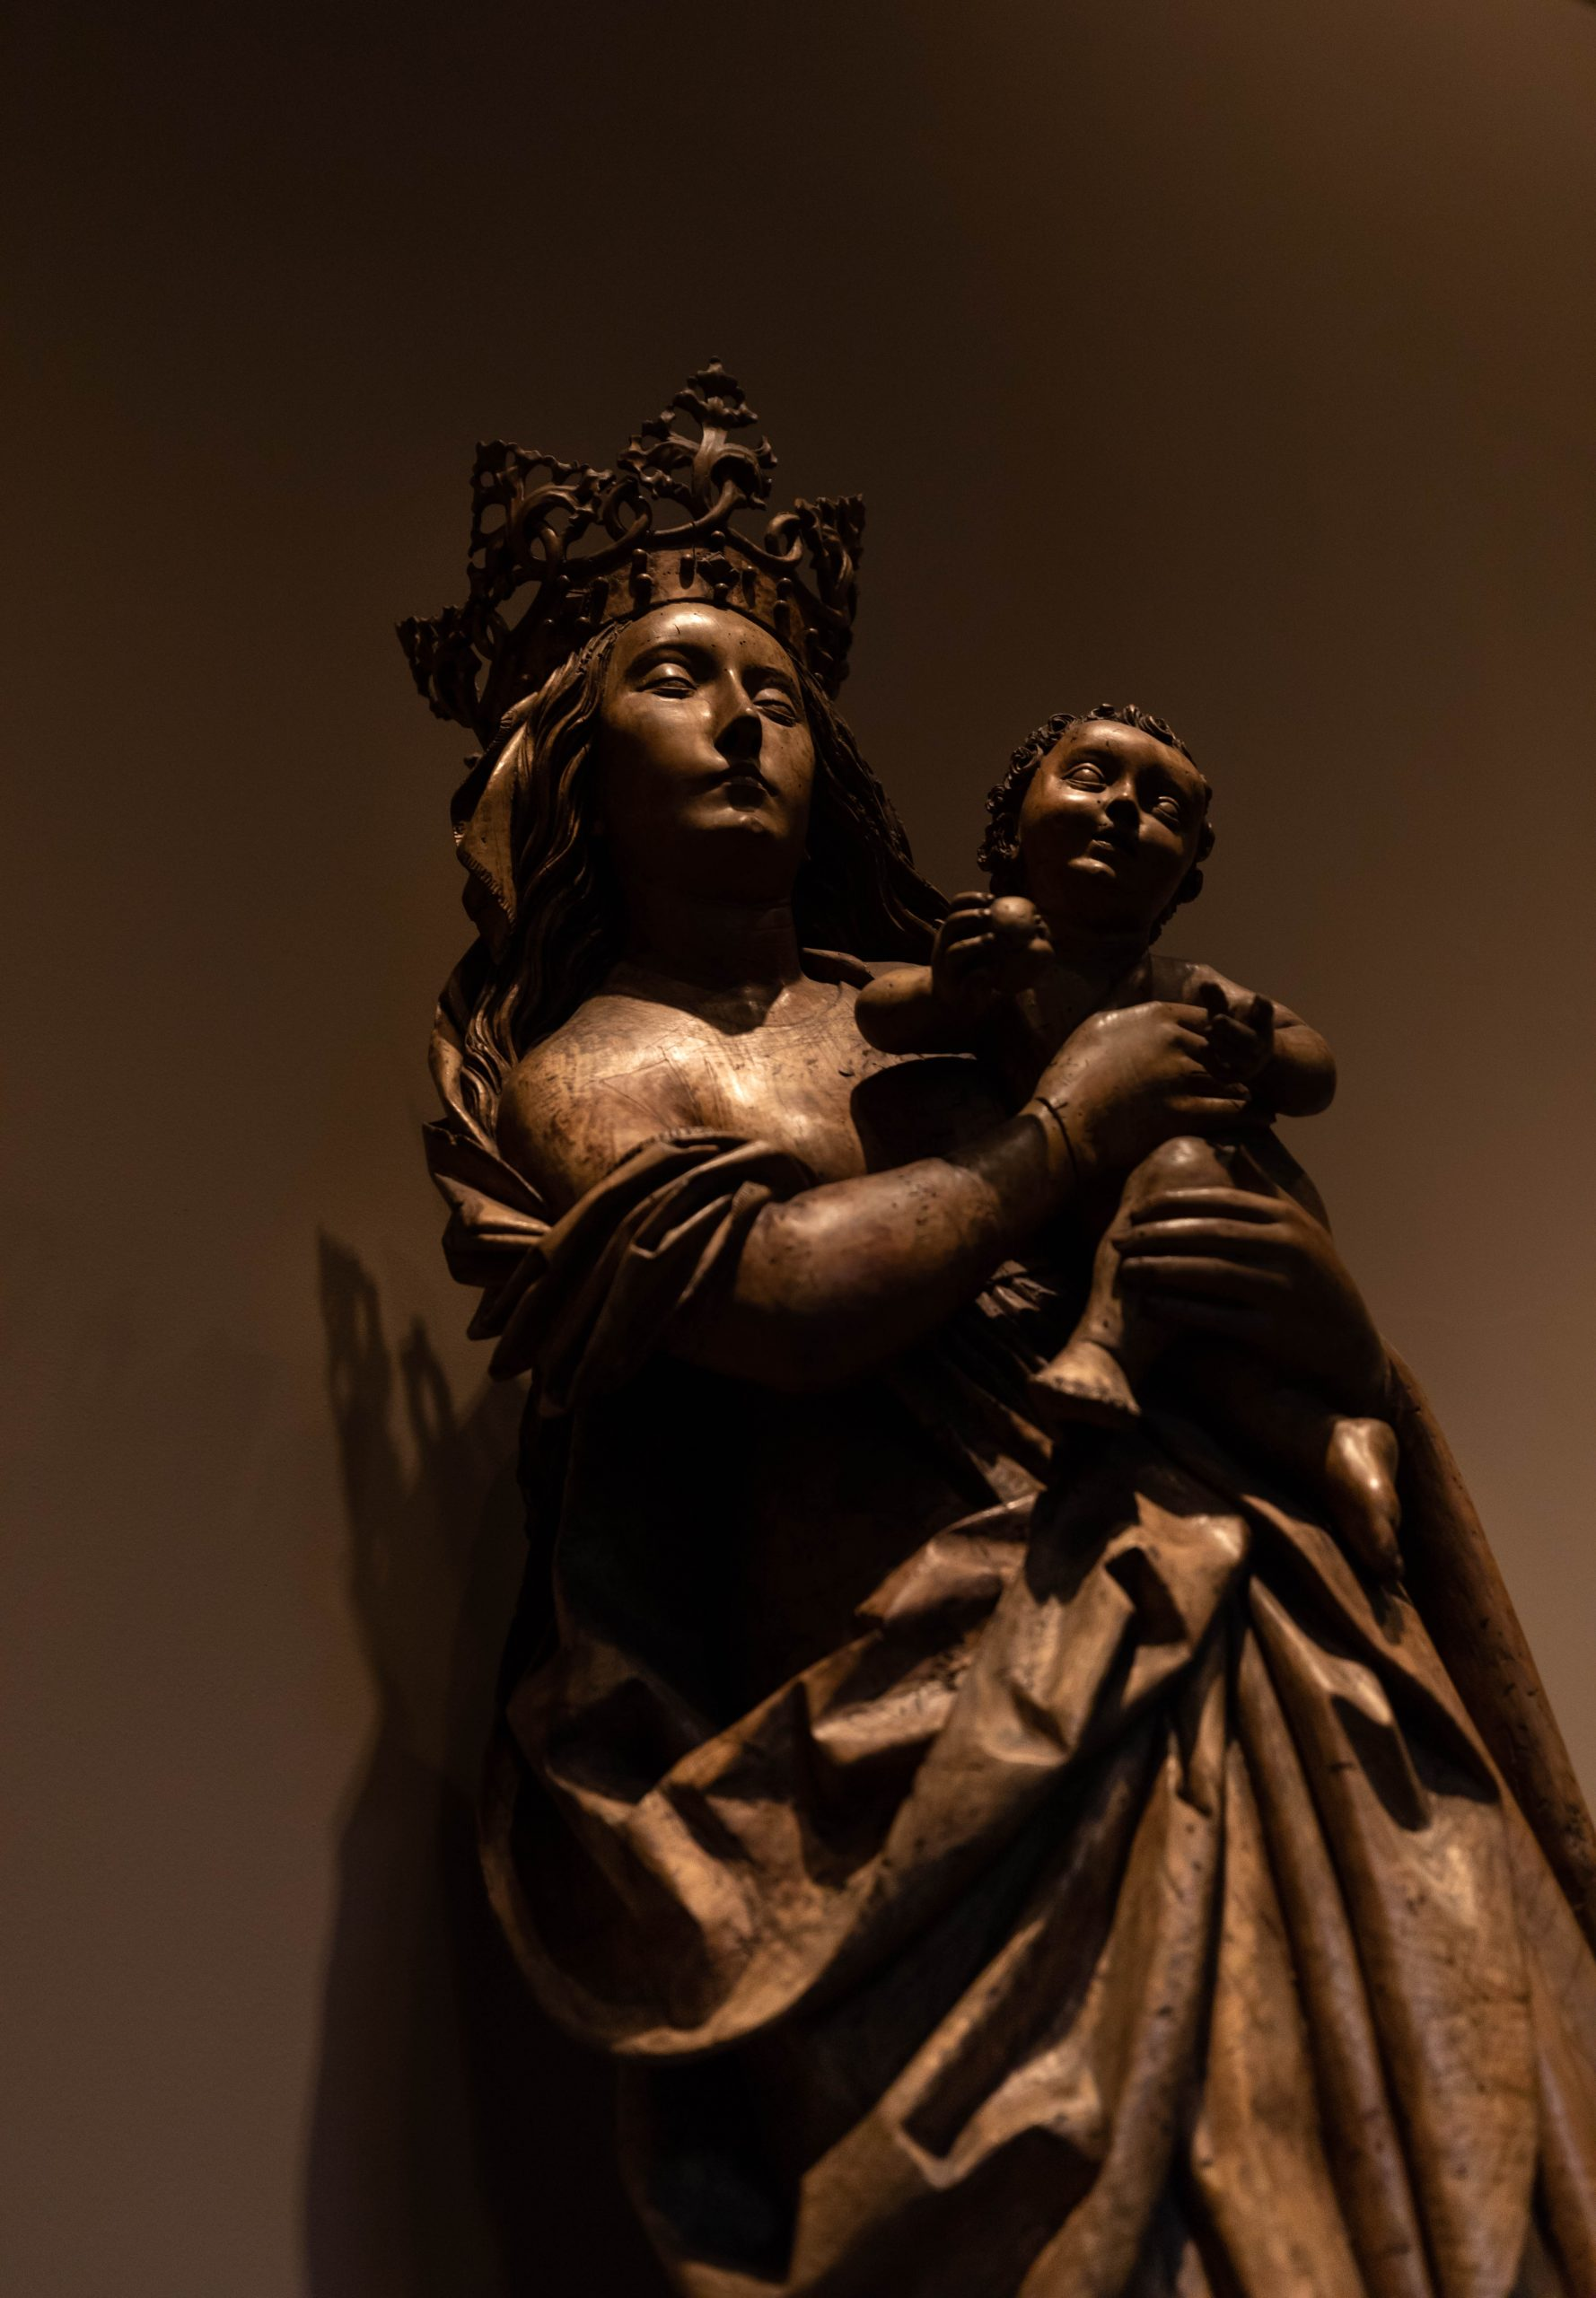 Madonna and Child Statue at Detroit Institute of Arts in Detroit Michigan Photographed by Annie Fairfax